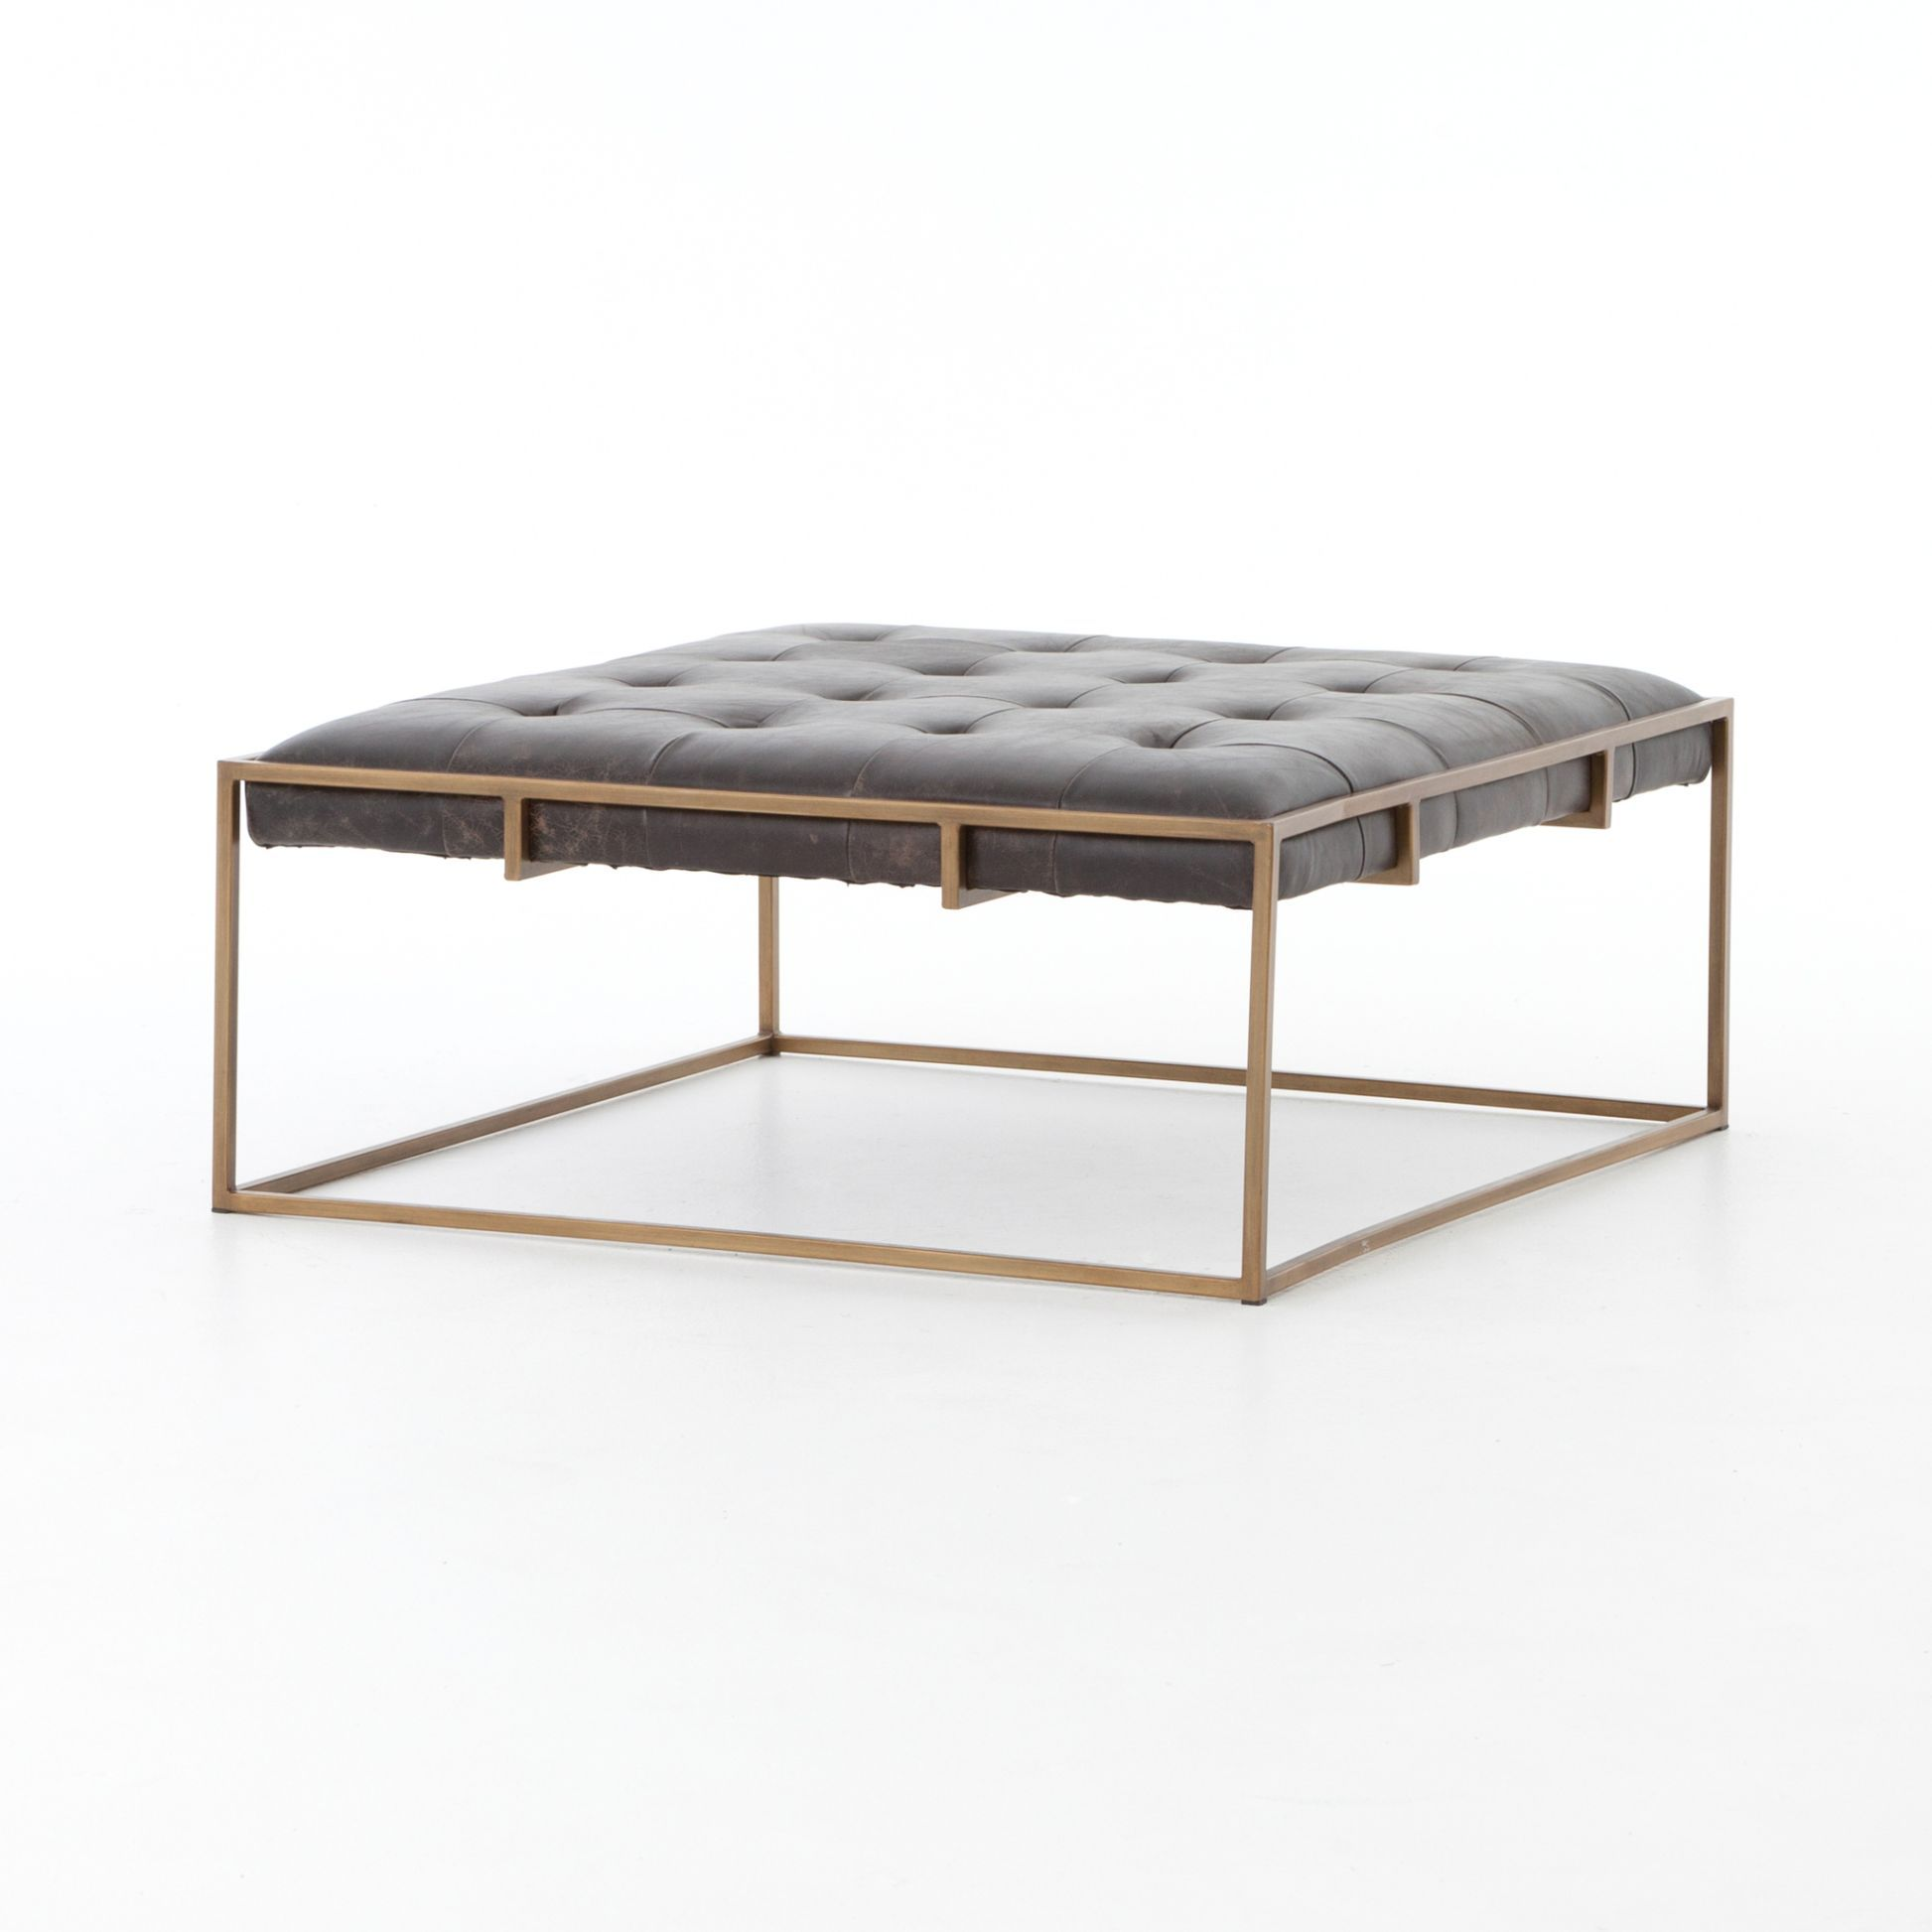 Square Tufted Leather Coffee Table Ottoman Mecox Gardens Leather Coffee Table Coffee Table Square Ottoman Coffee Table